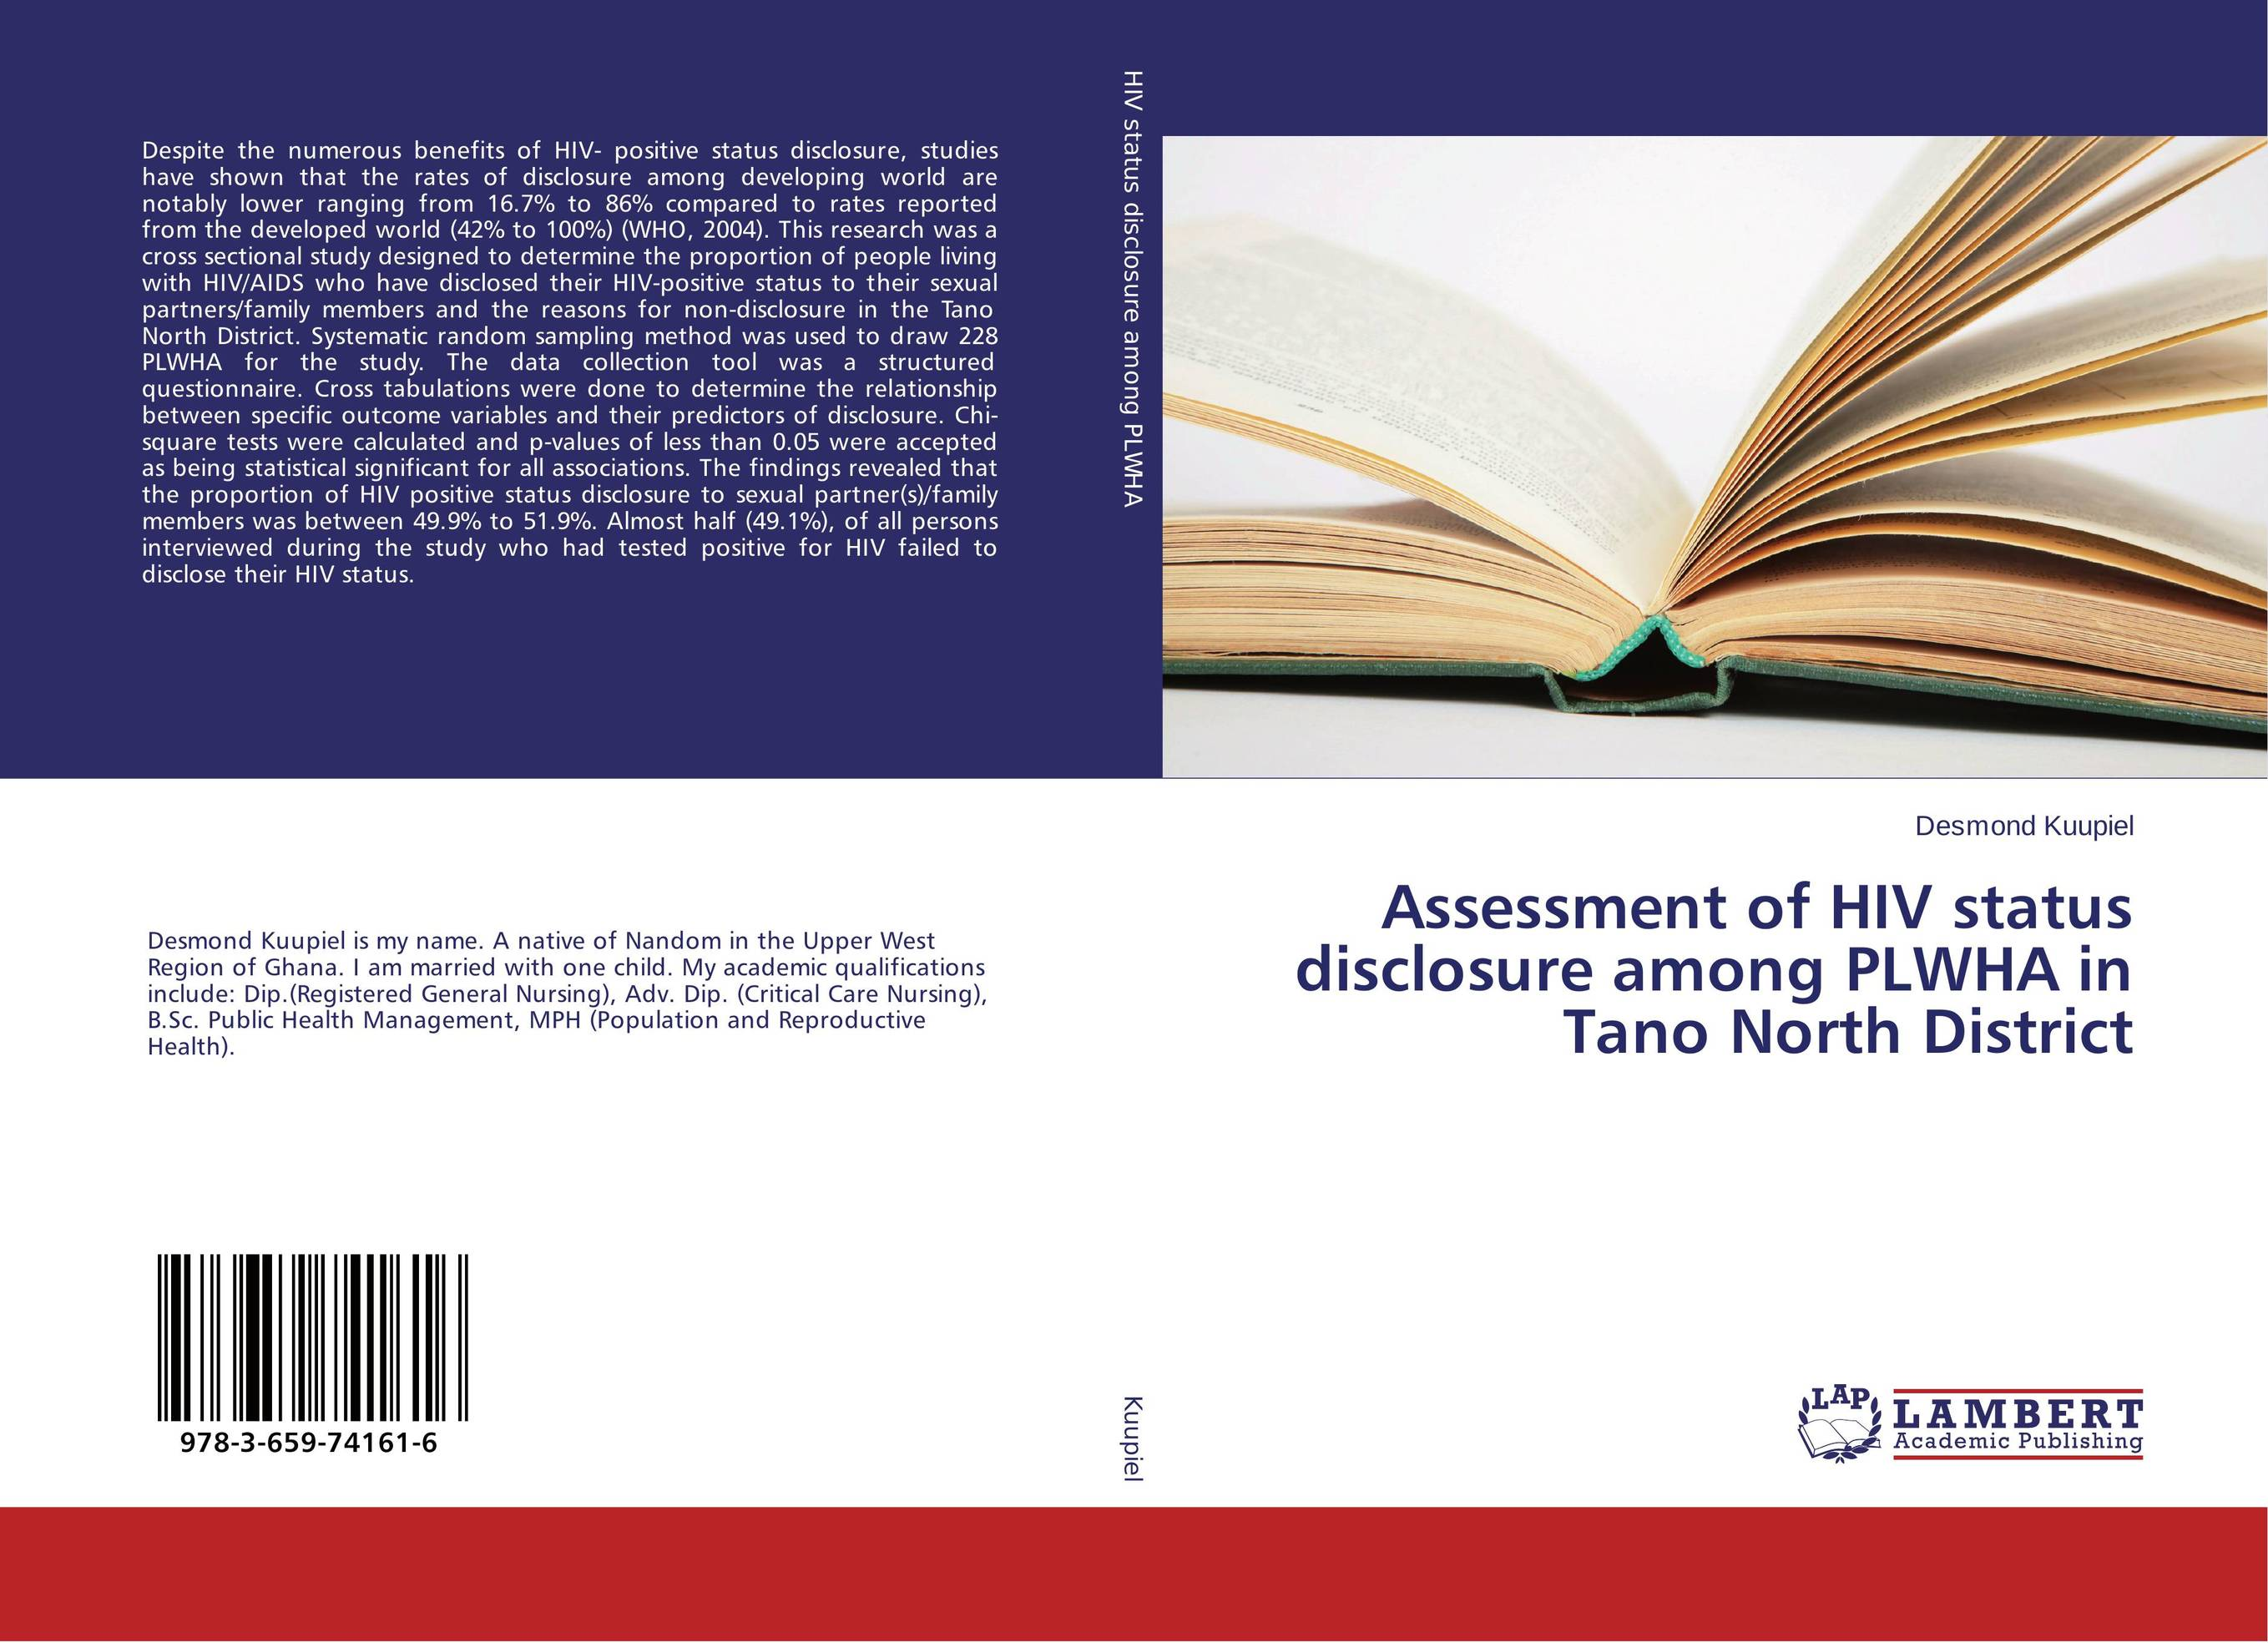 Assessment of HIV status disclosure among PLWHA in Tano North District